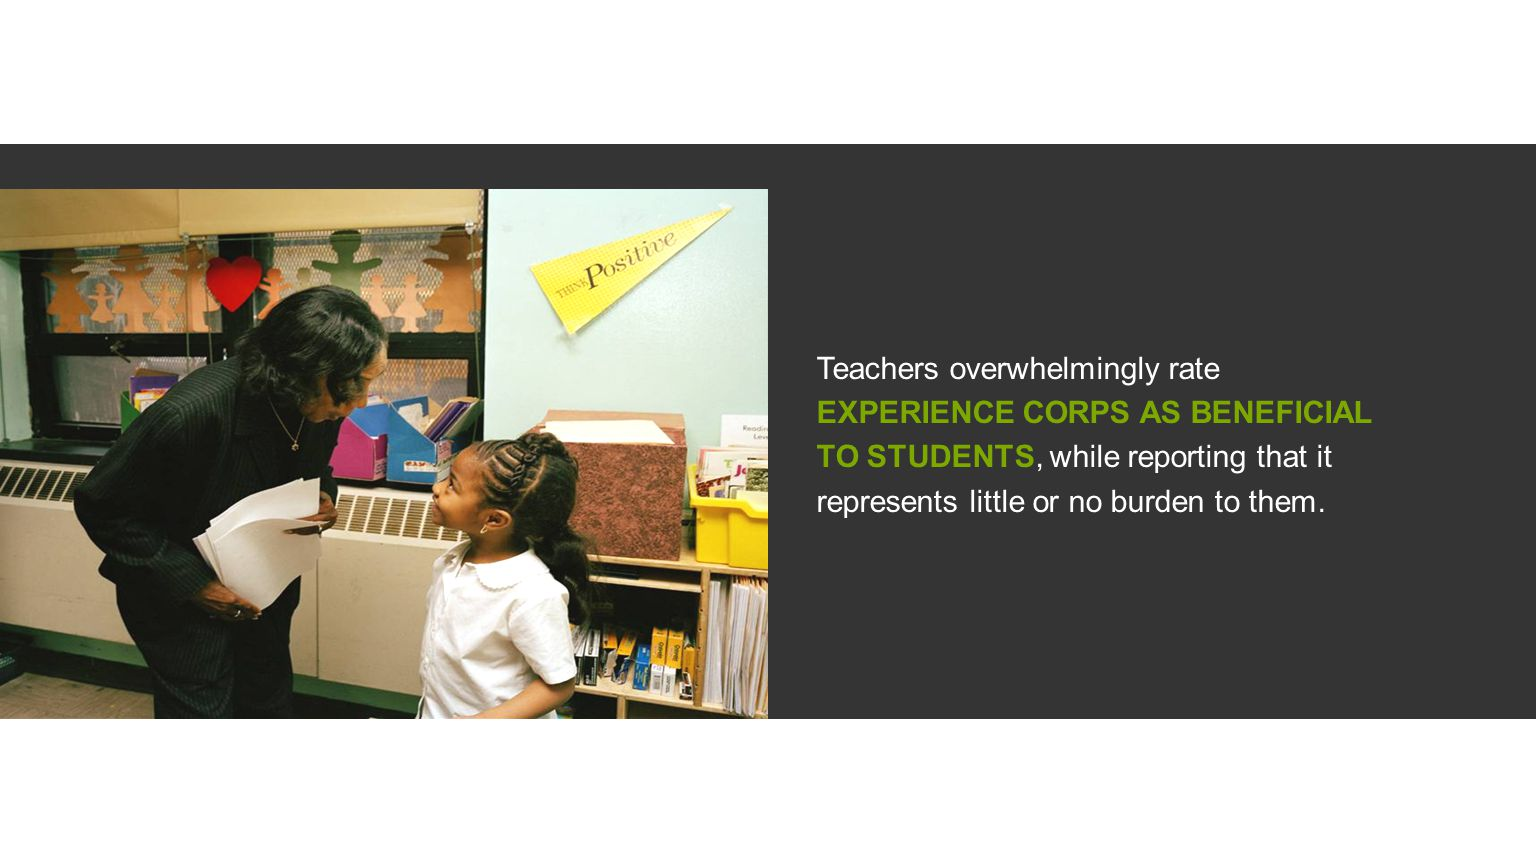 Teachers overwhelmingly rate EXPERIENCE CORPS AS BENEFICIAL TO STUDENTS, while reporting that it represents little or no burden to them.